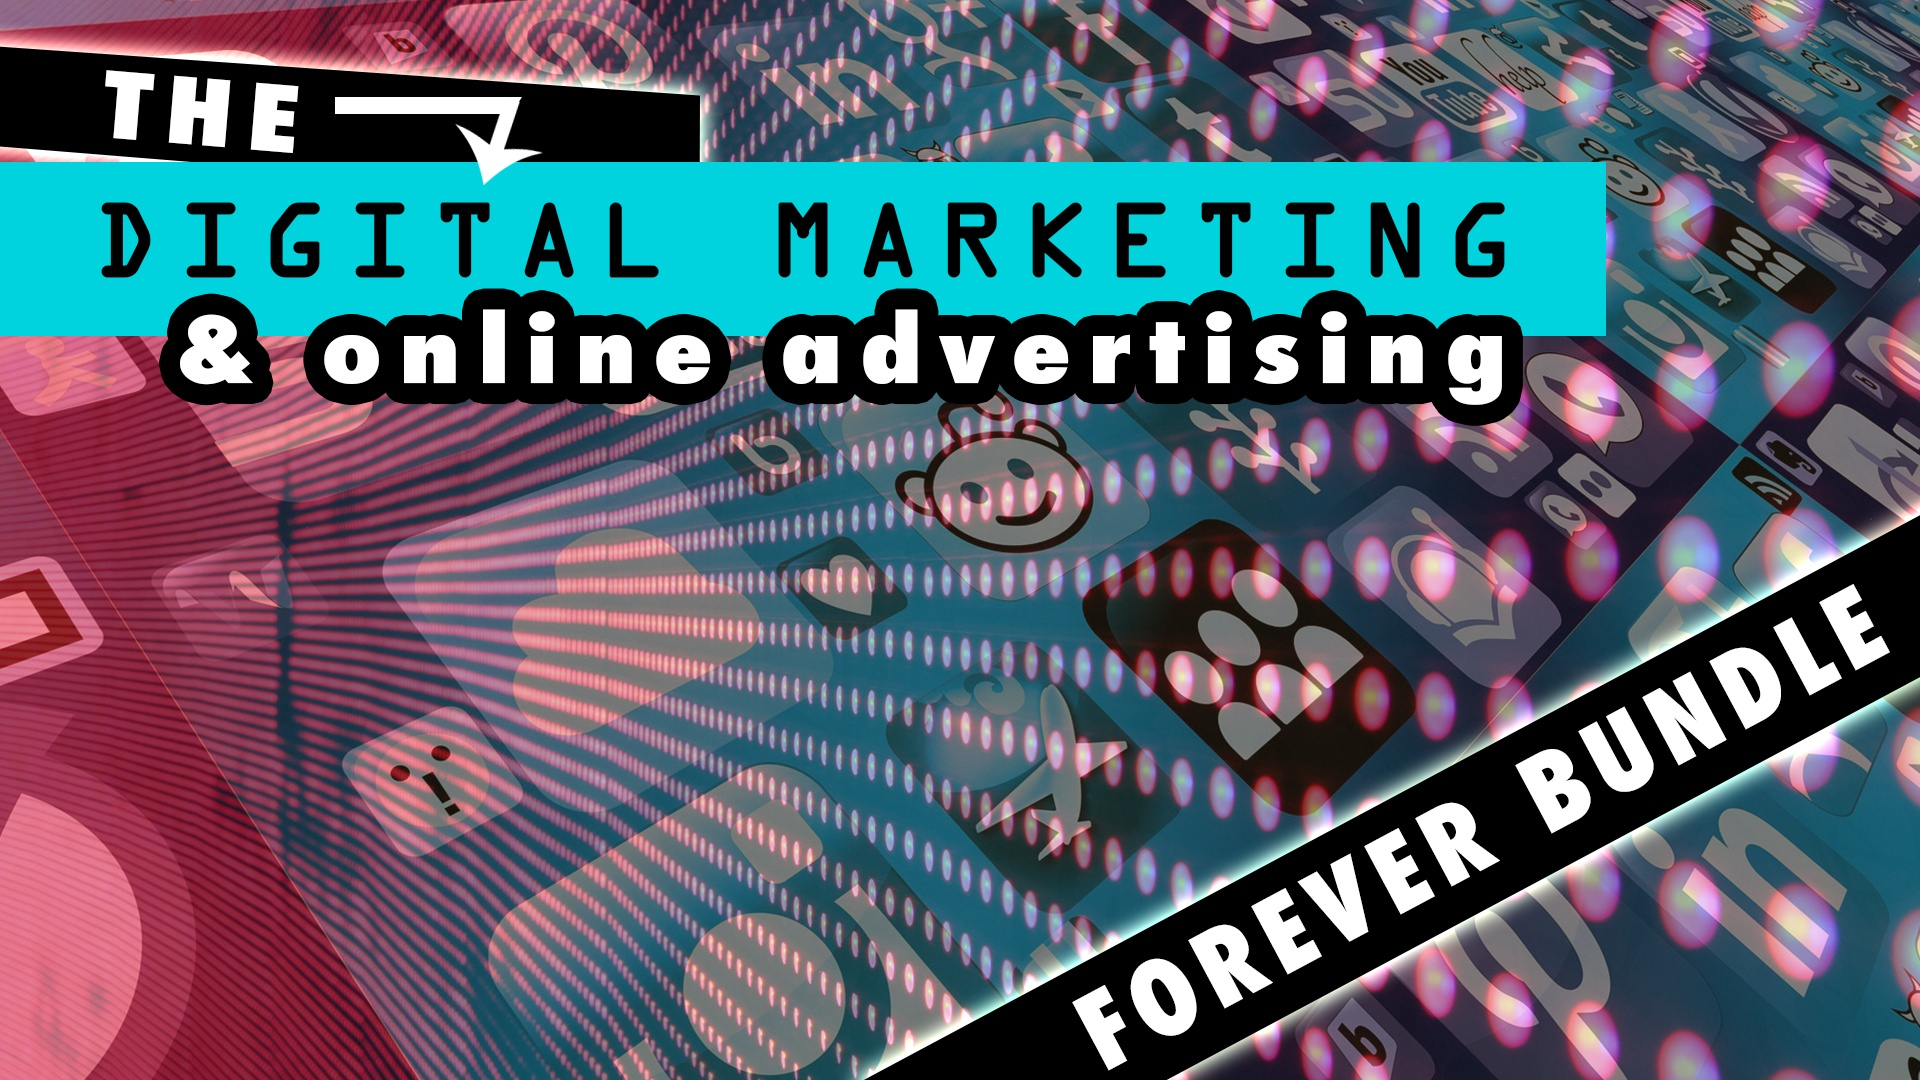 The Digital Marketing and Online Advertising Forever Bundle